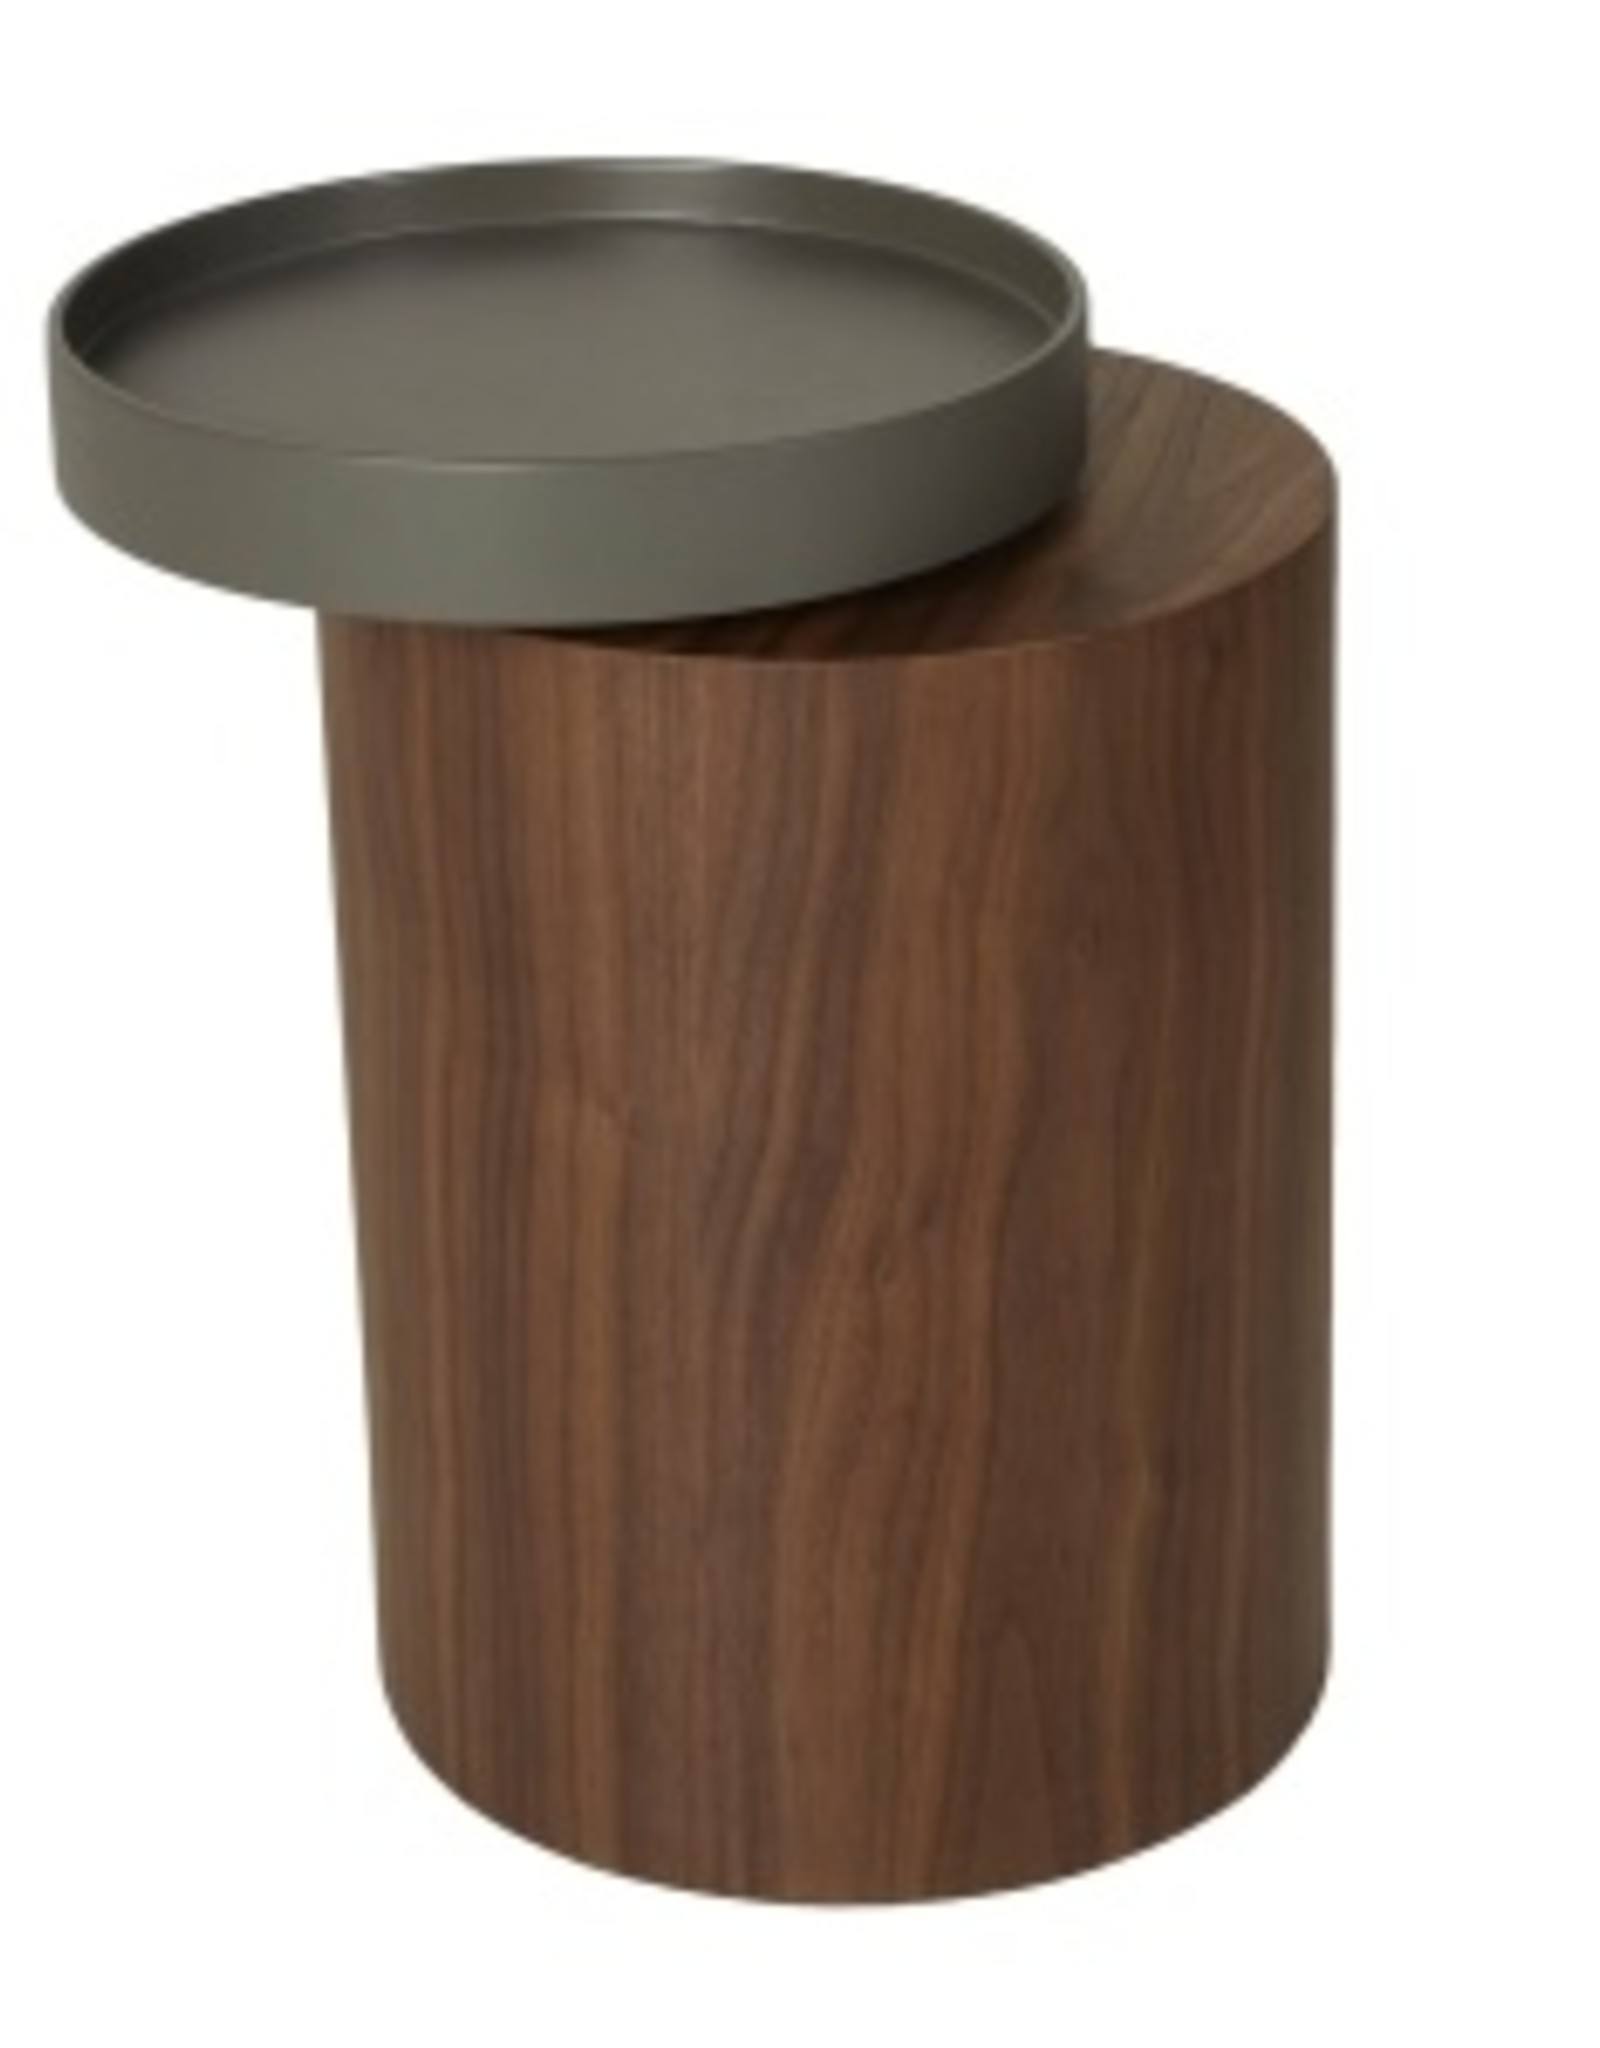 Quax Side Table With Rotary Tray